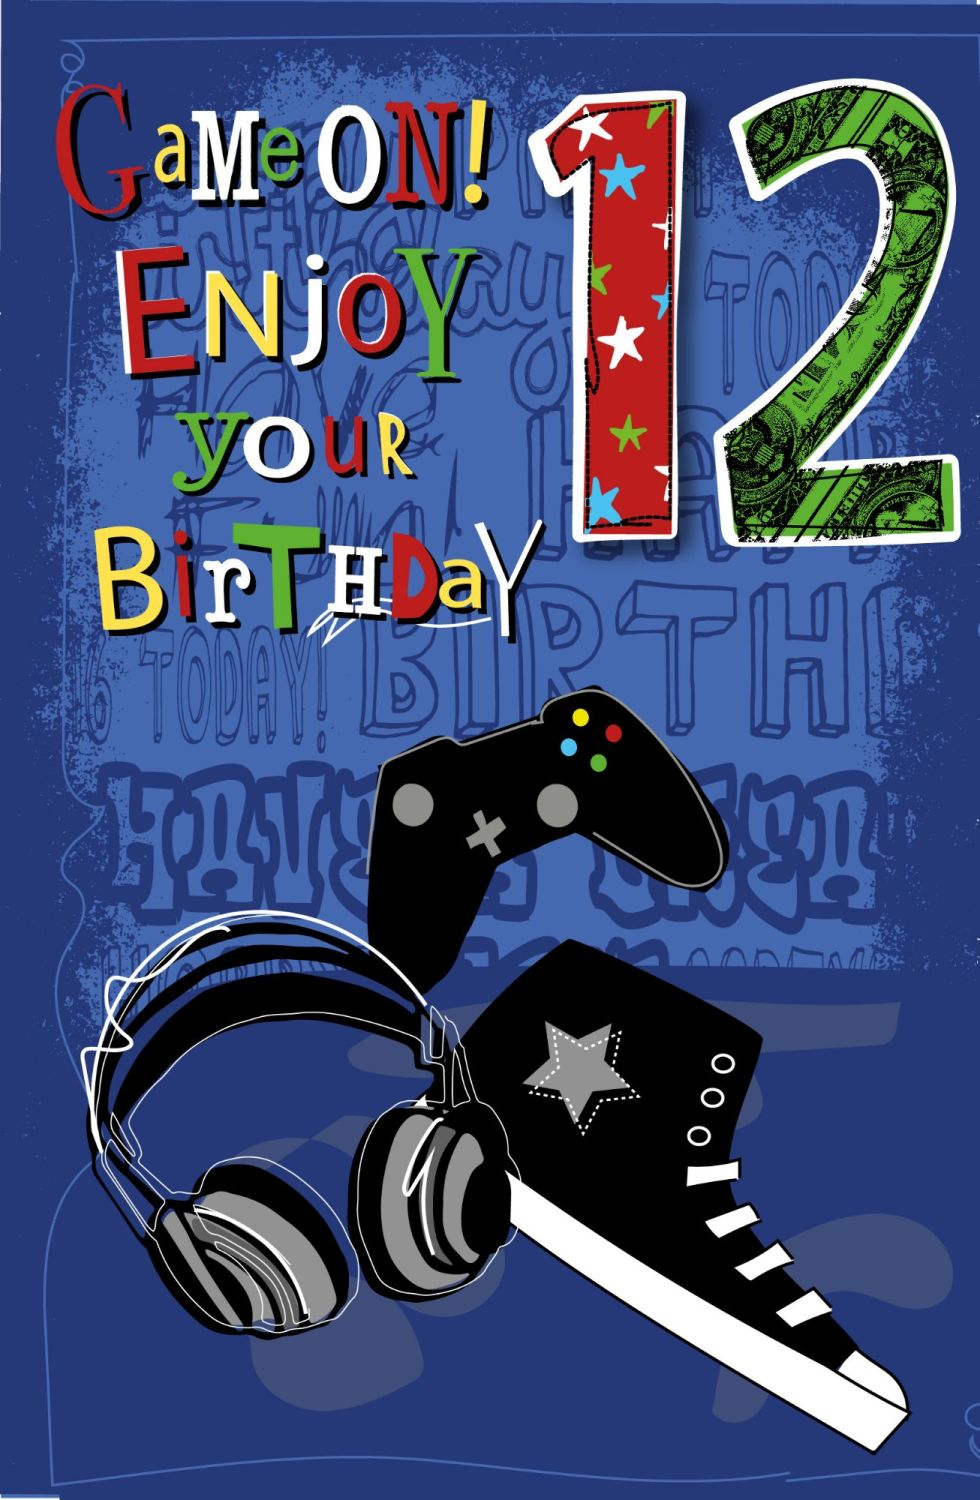 12th Birthday Card - GAME ON - Enjoy YOUR Birthday - Birthday CARD For 11 Y